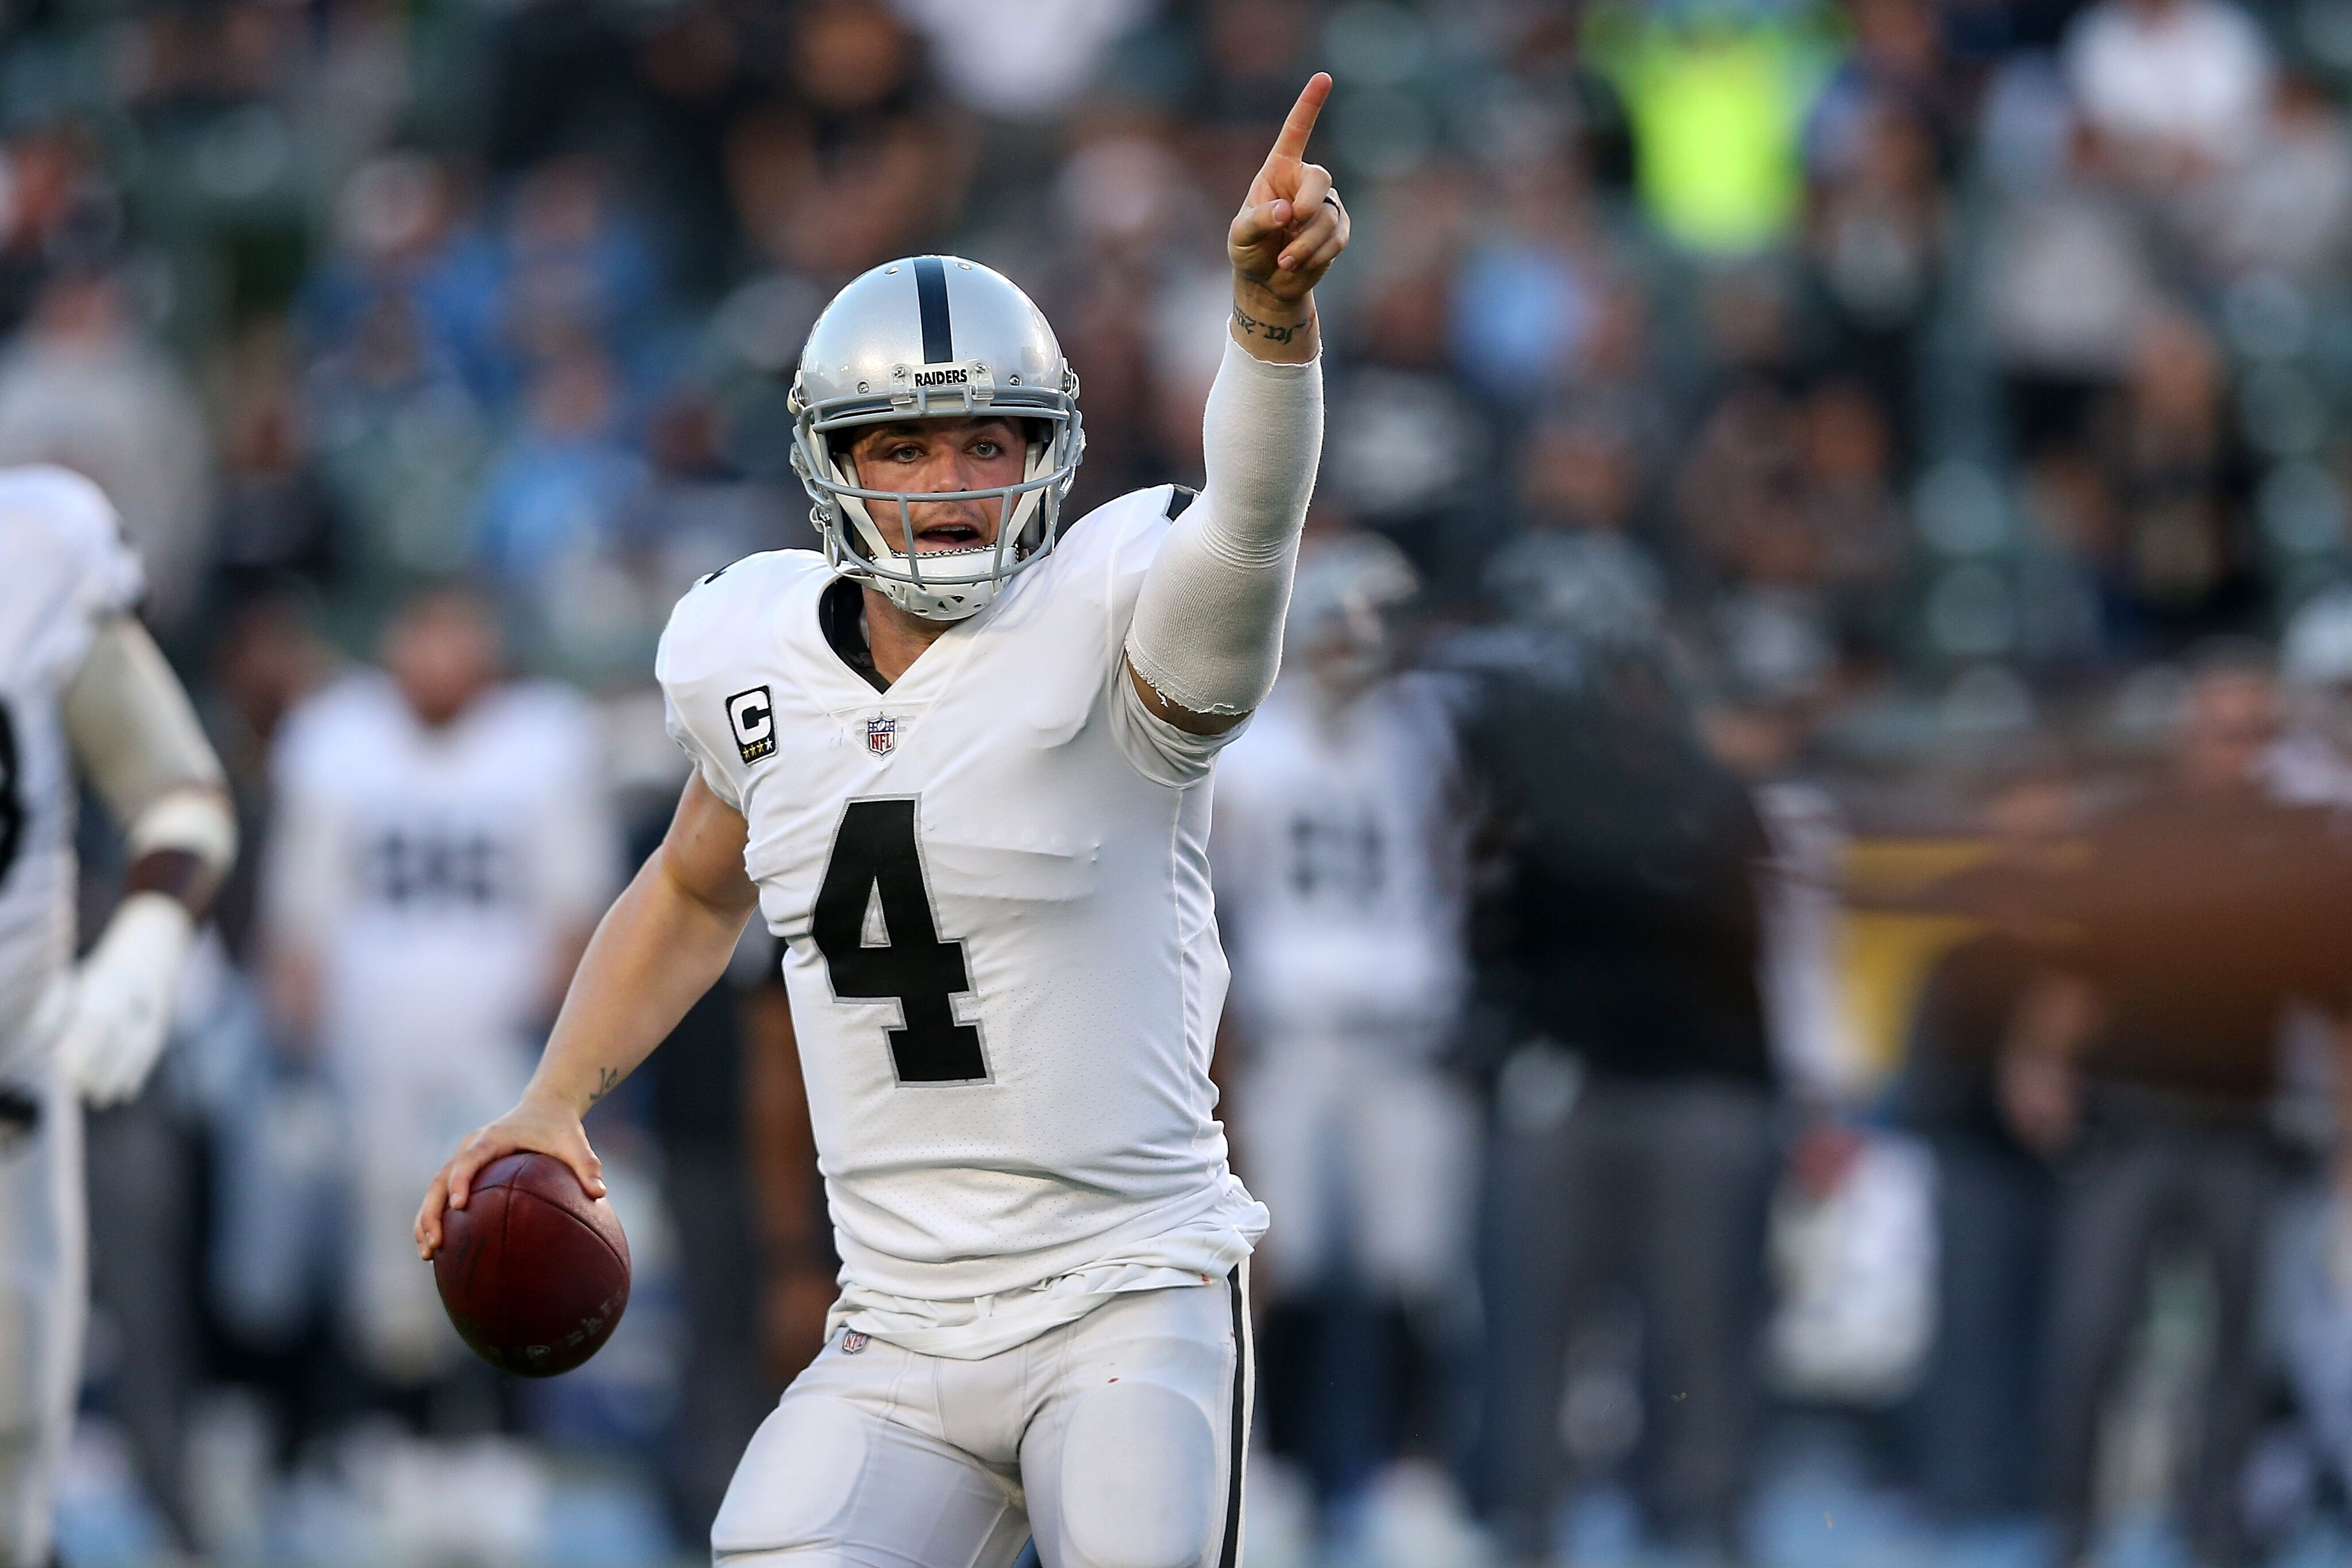 900138636-oakland-raiders-v-los-angeles-chargers.jpg